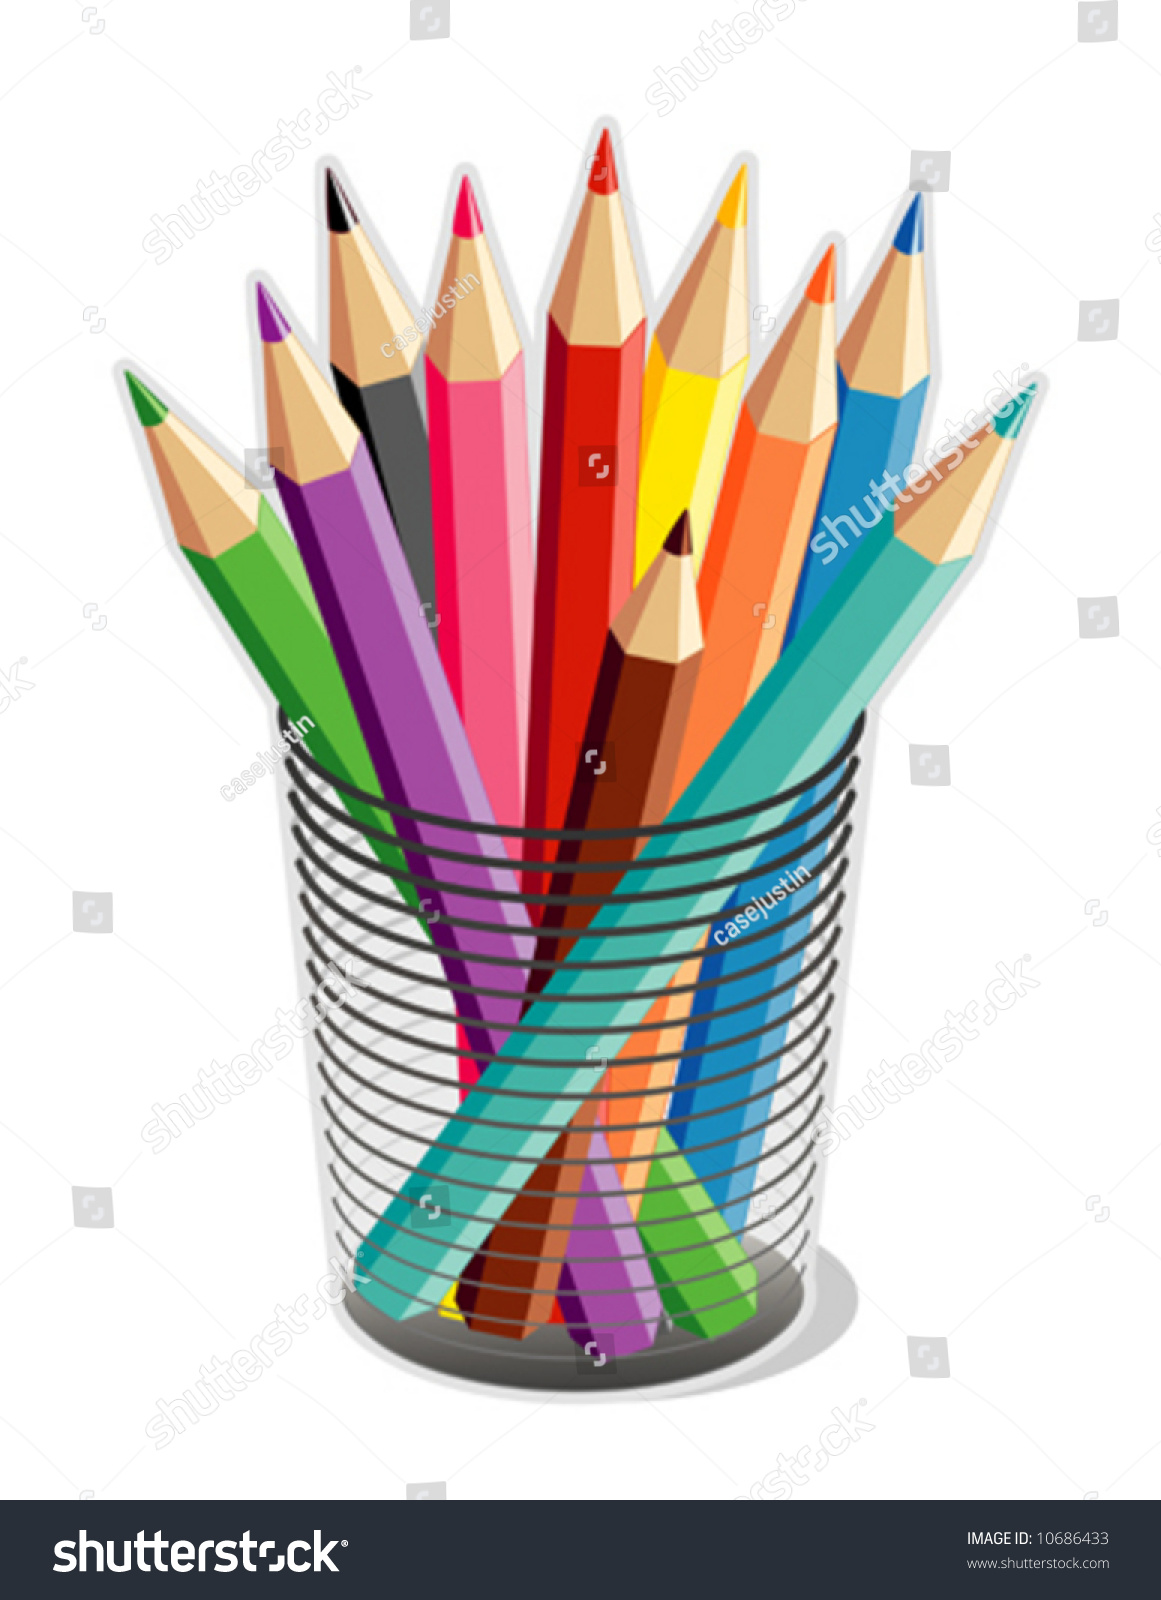 pencils multi color drawing writing tools stock vector 10686433